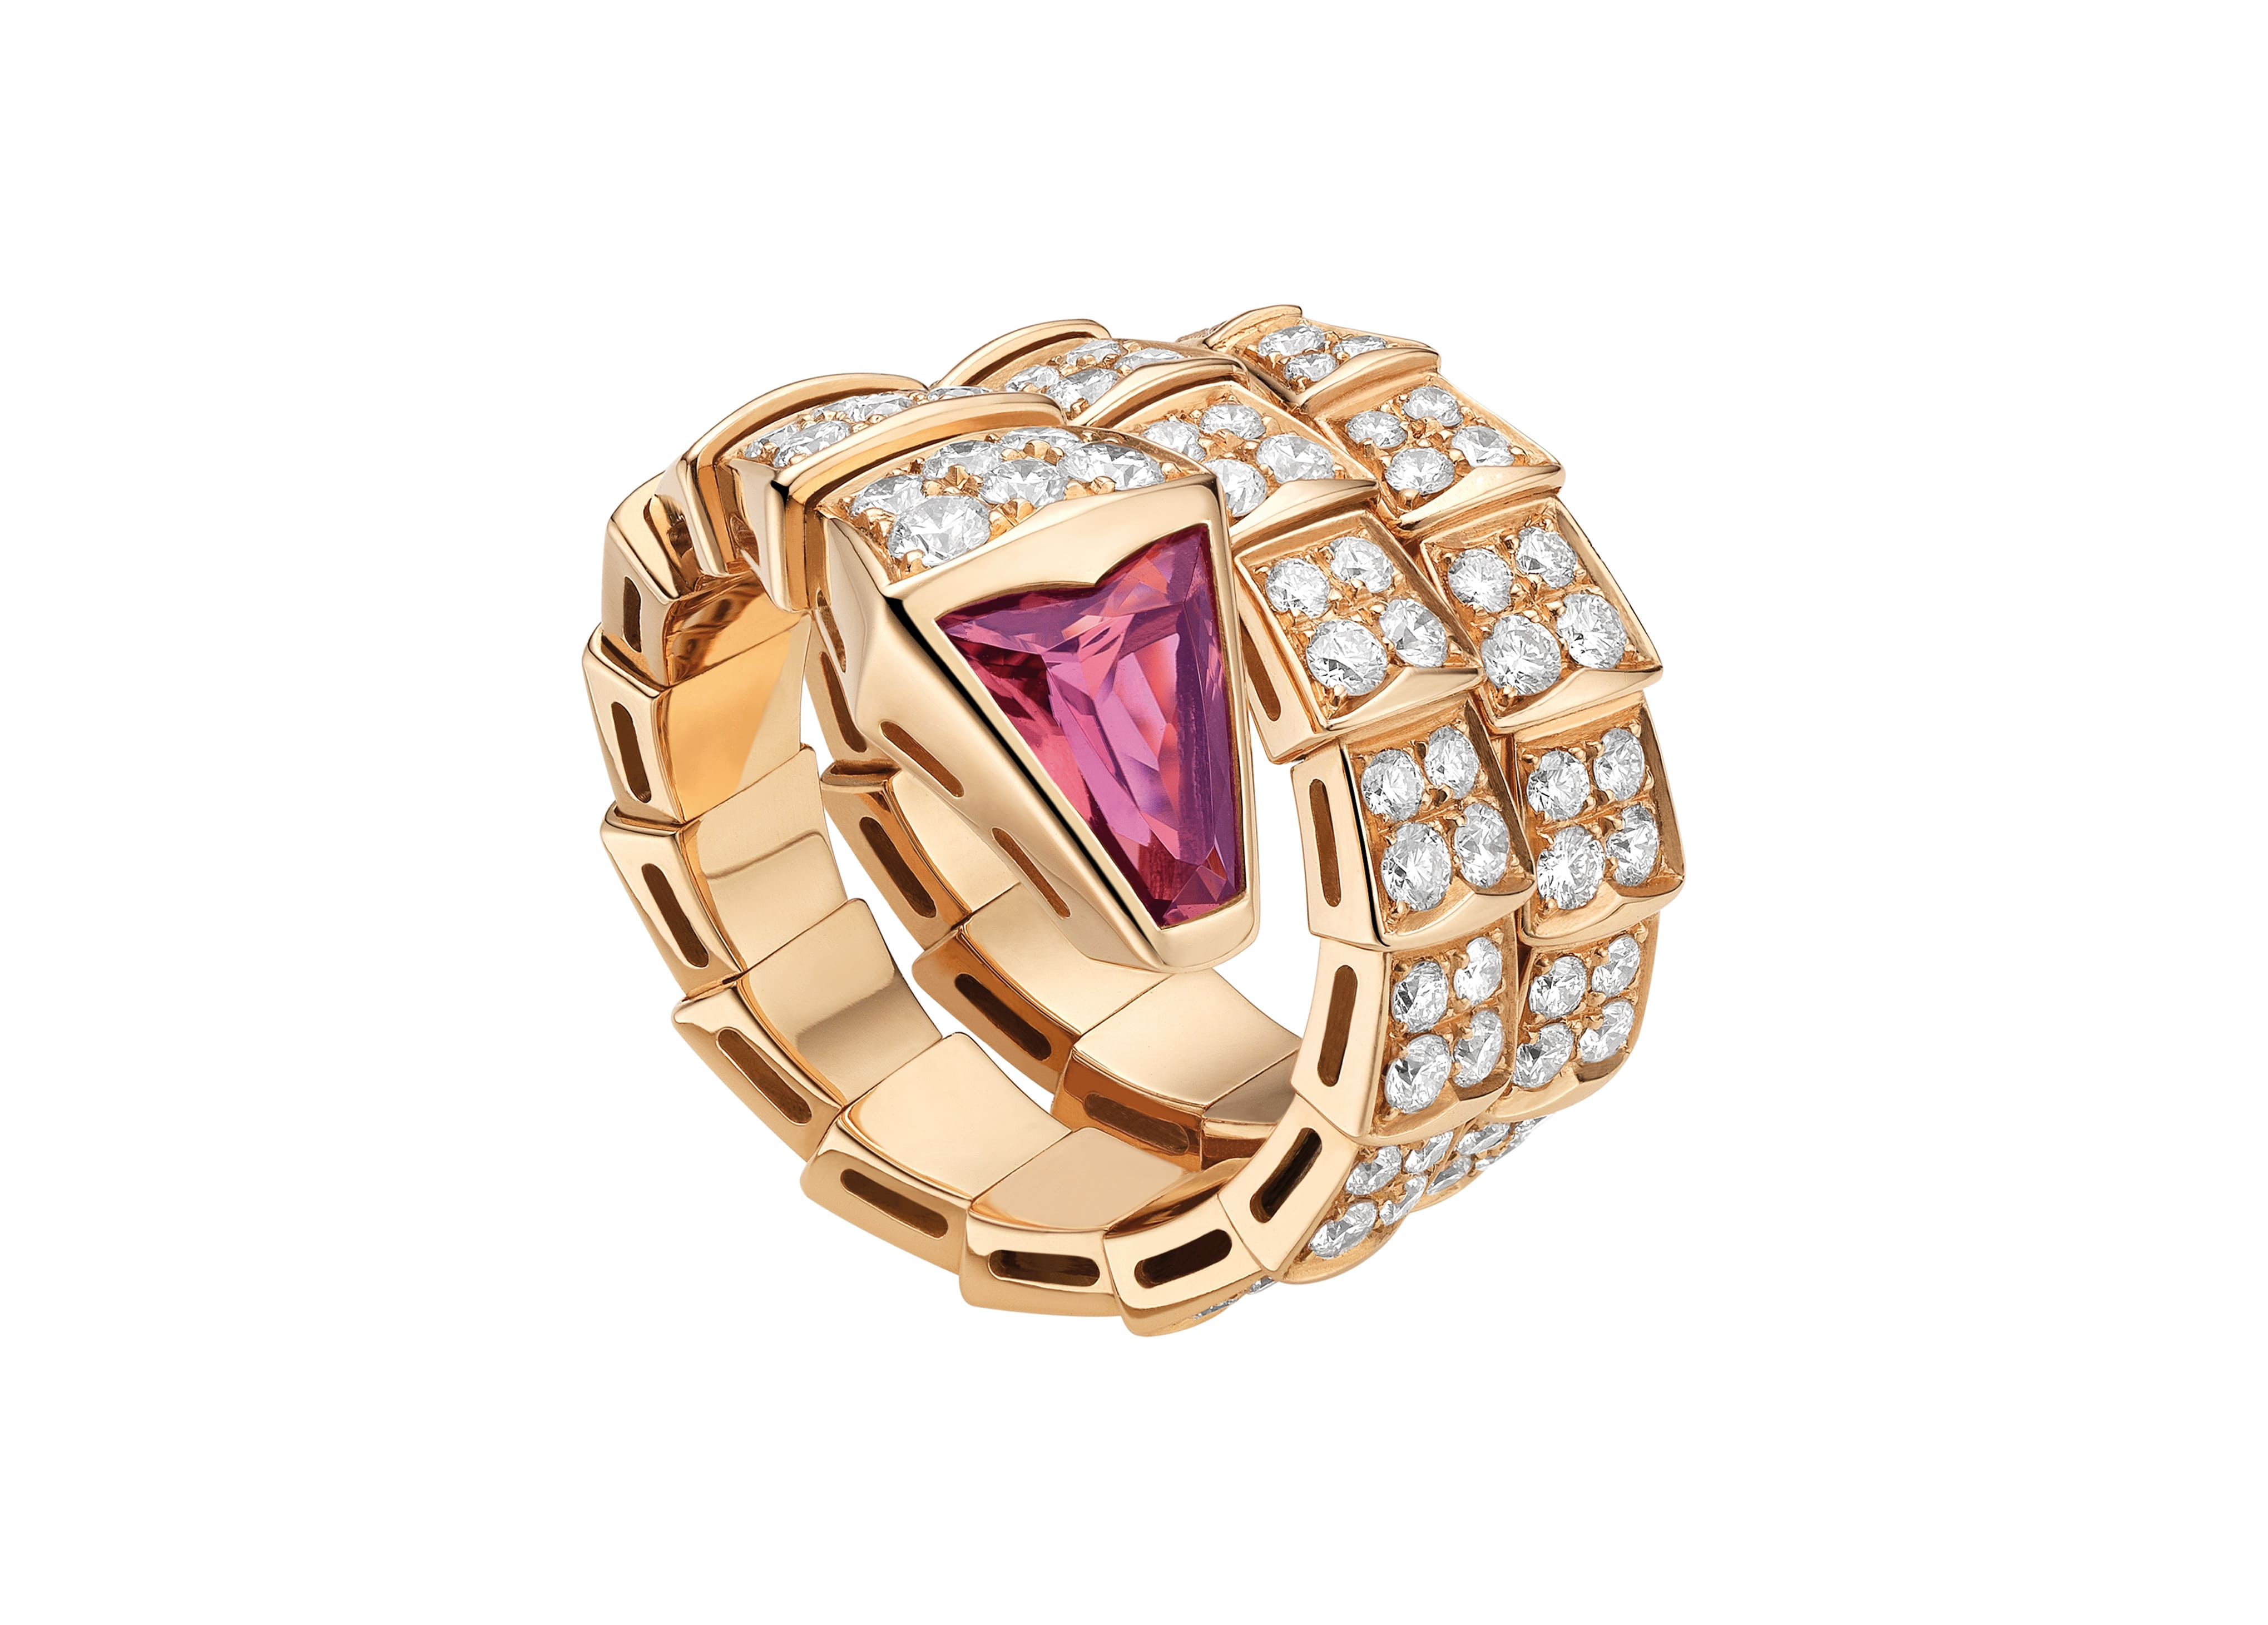 BVLGARI Serpenti Two-Coil Ring in 18 KT Rose Gold